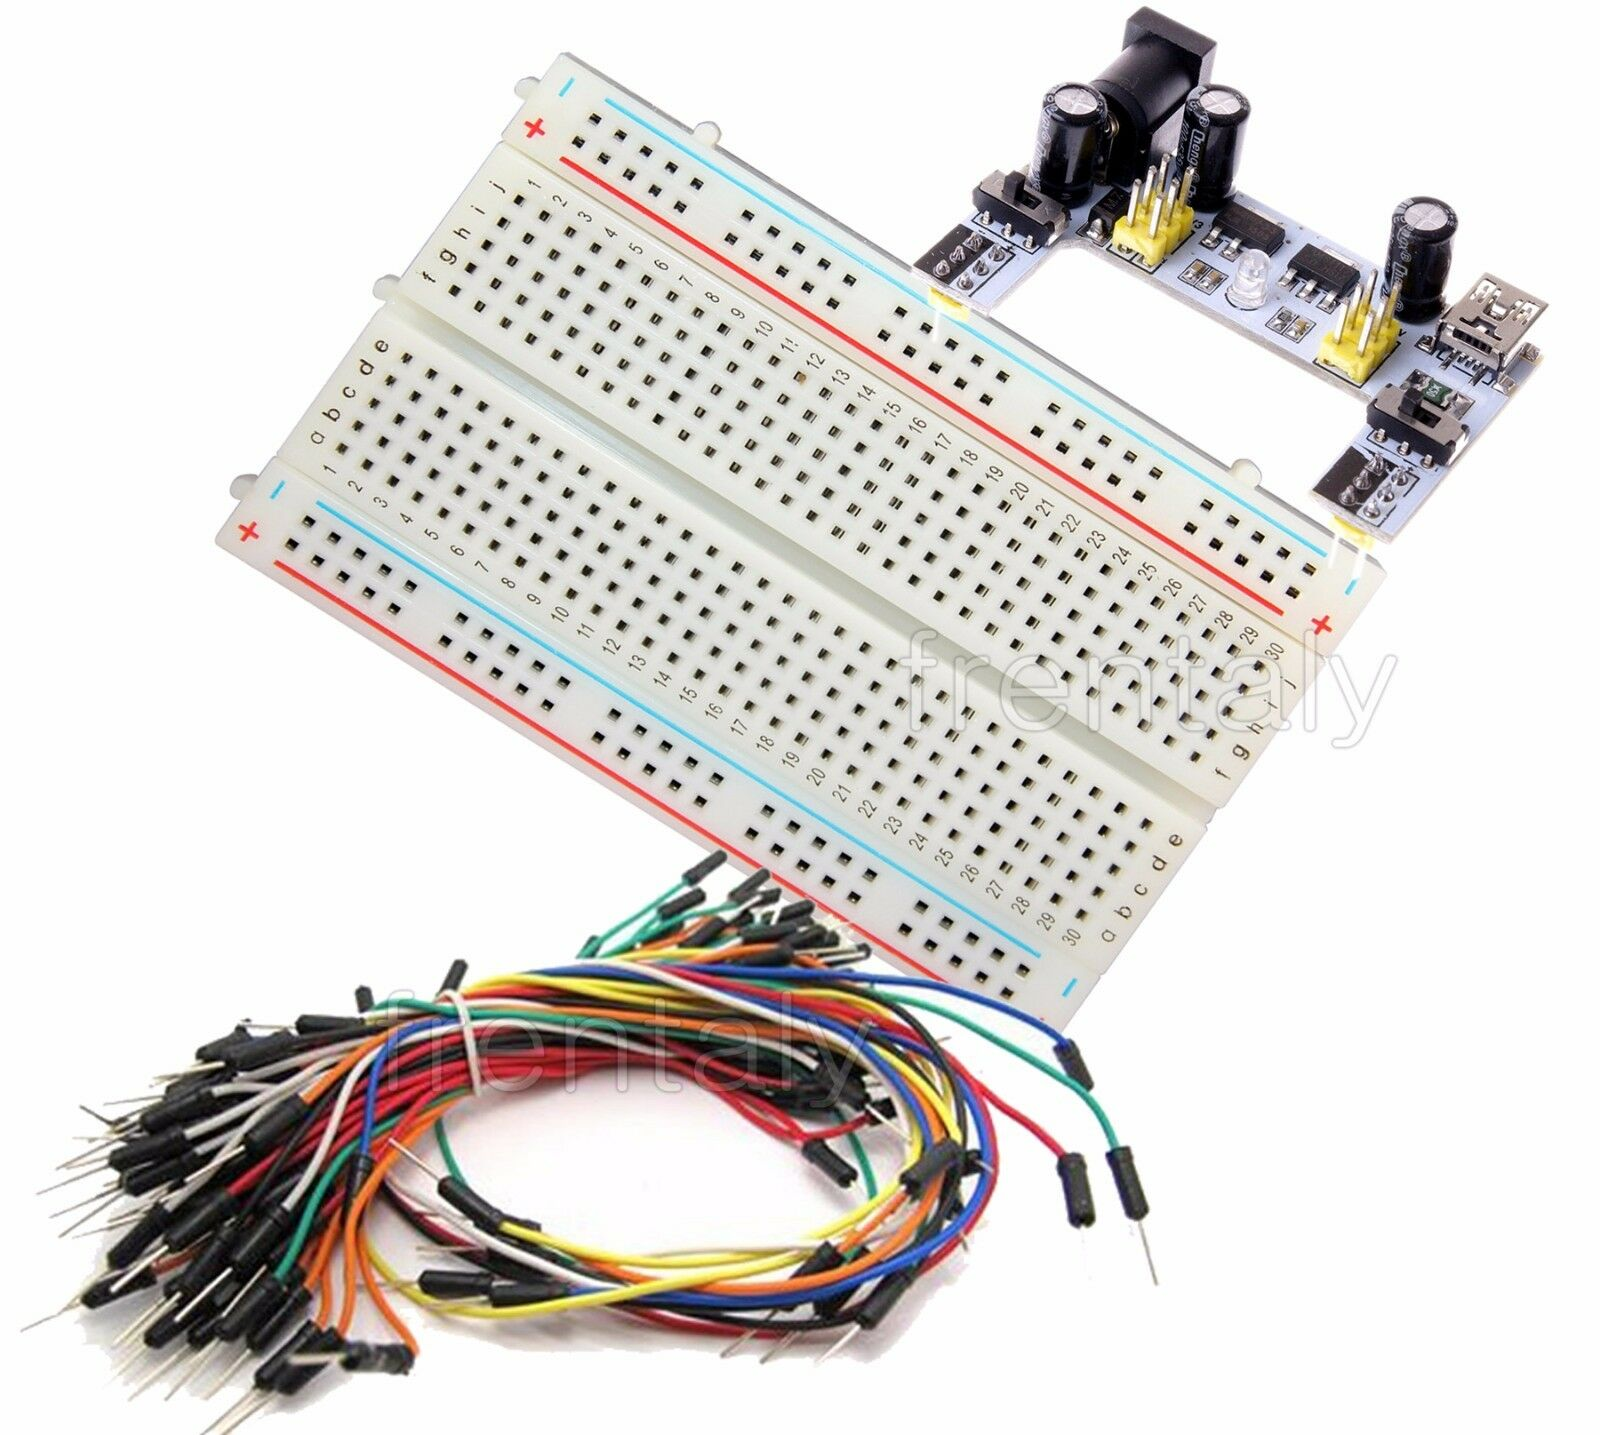 Mini Prototype Breadboard K2 Power Supply 65 Pcs Wire Cable Breadboards Are Used To Electronic Circuits Without Having Picture 1 Of 4